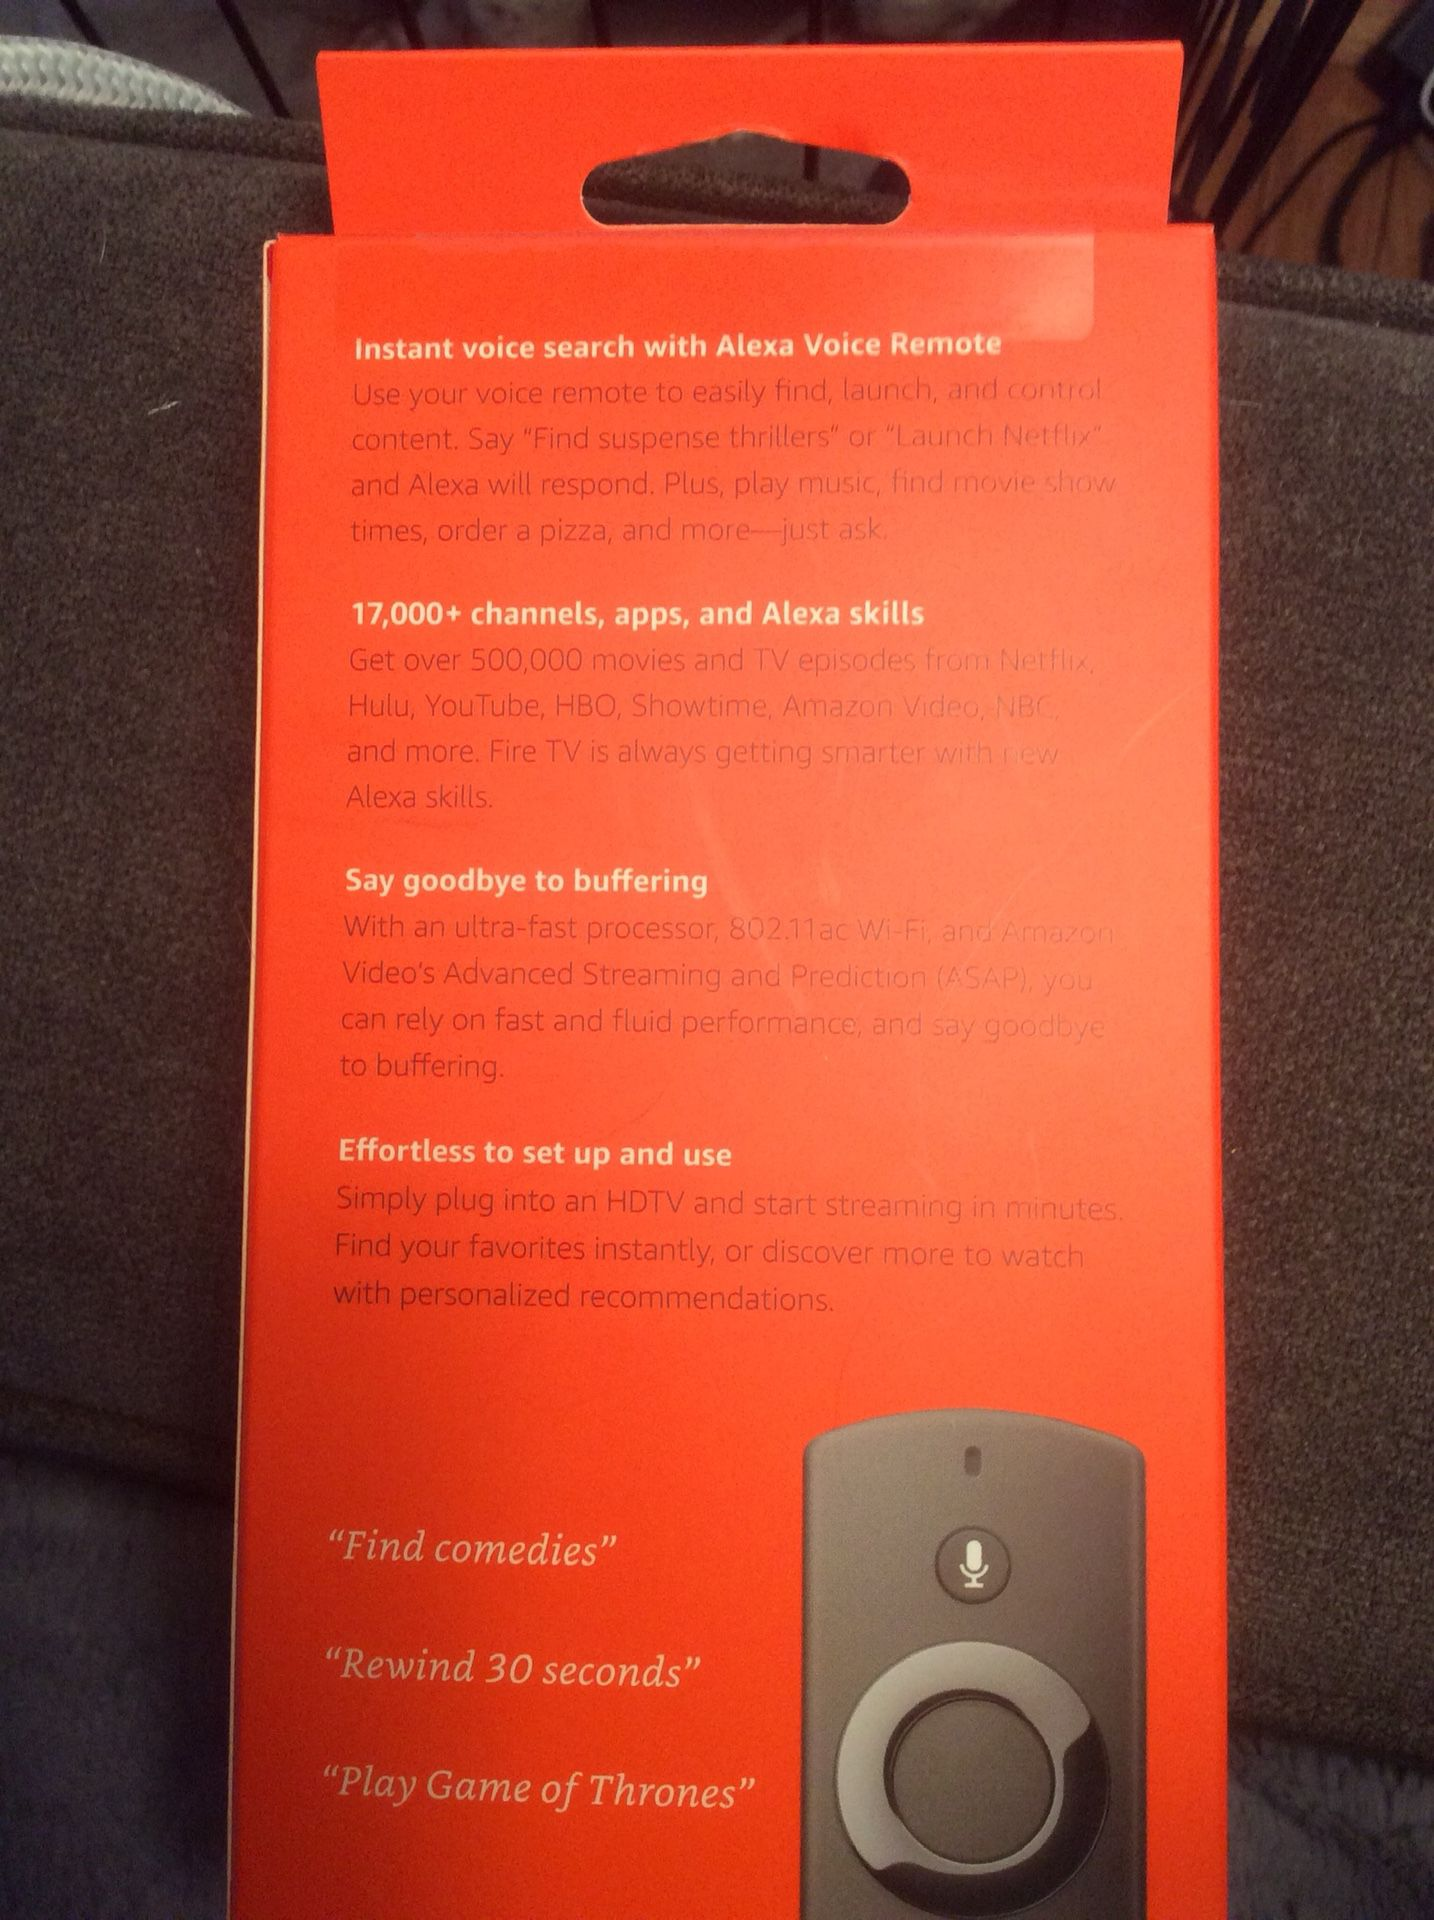 Amazon Fire TV with Alexa Voice Remote (Second Generation)